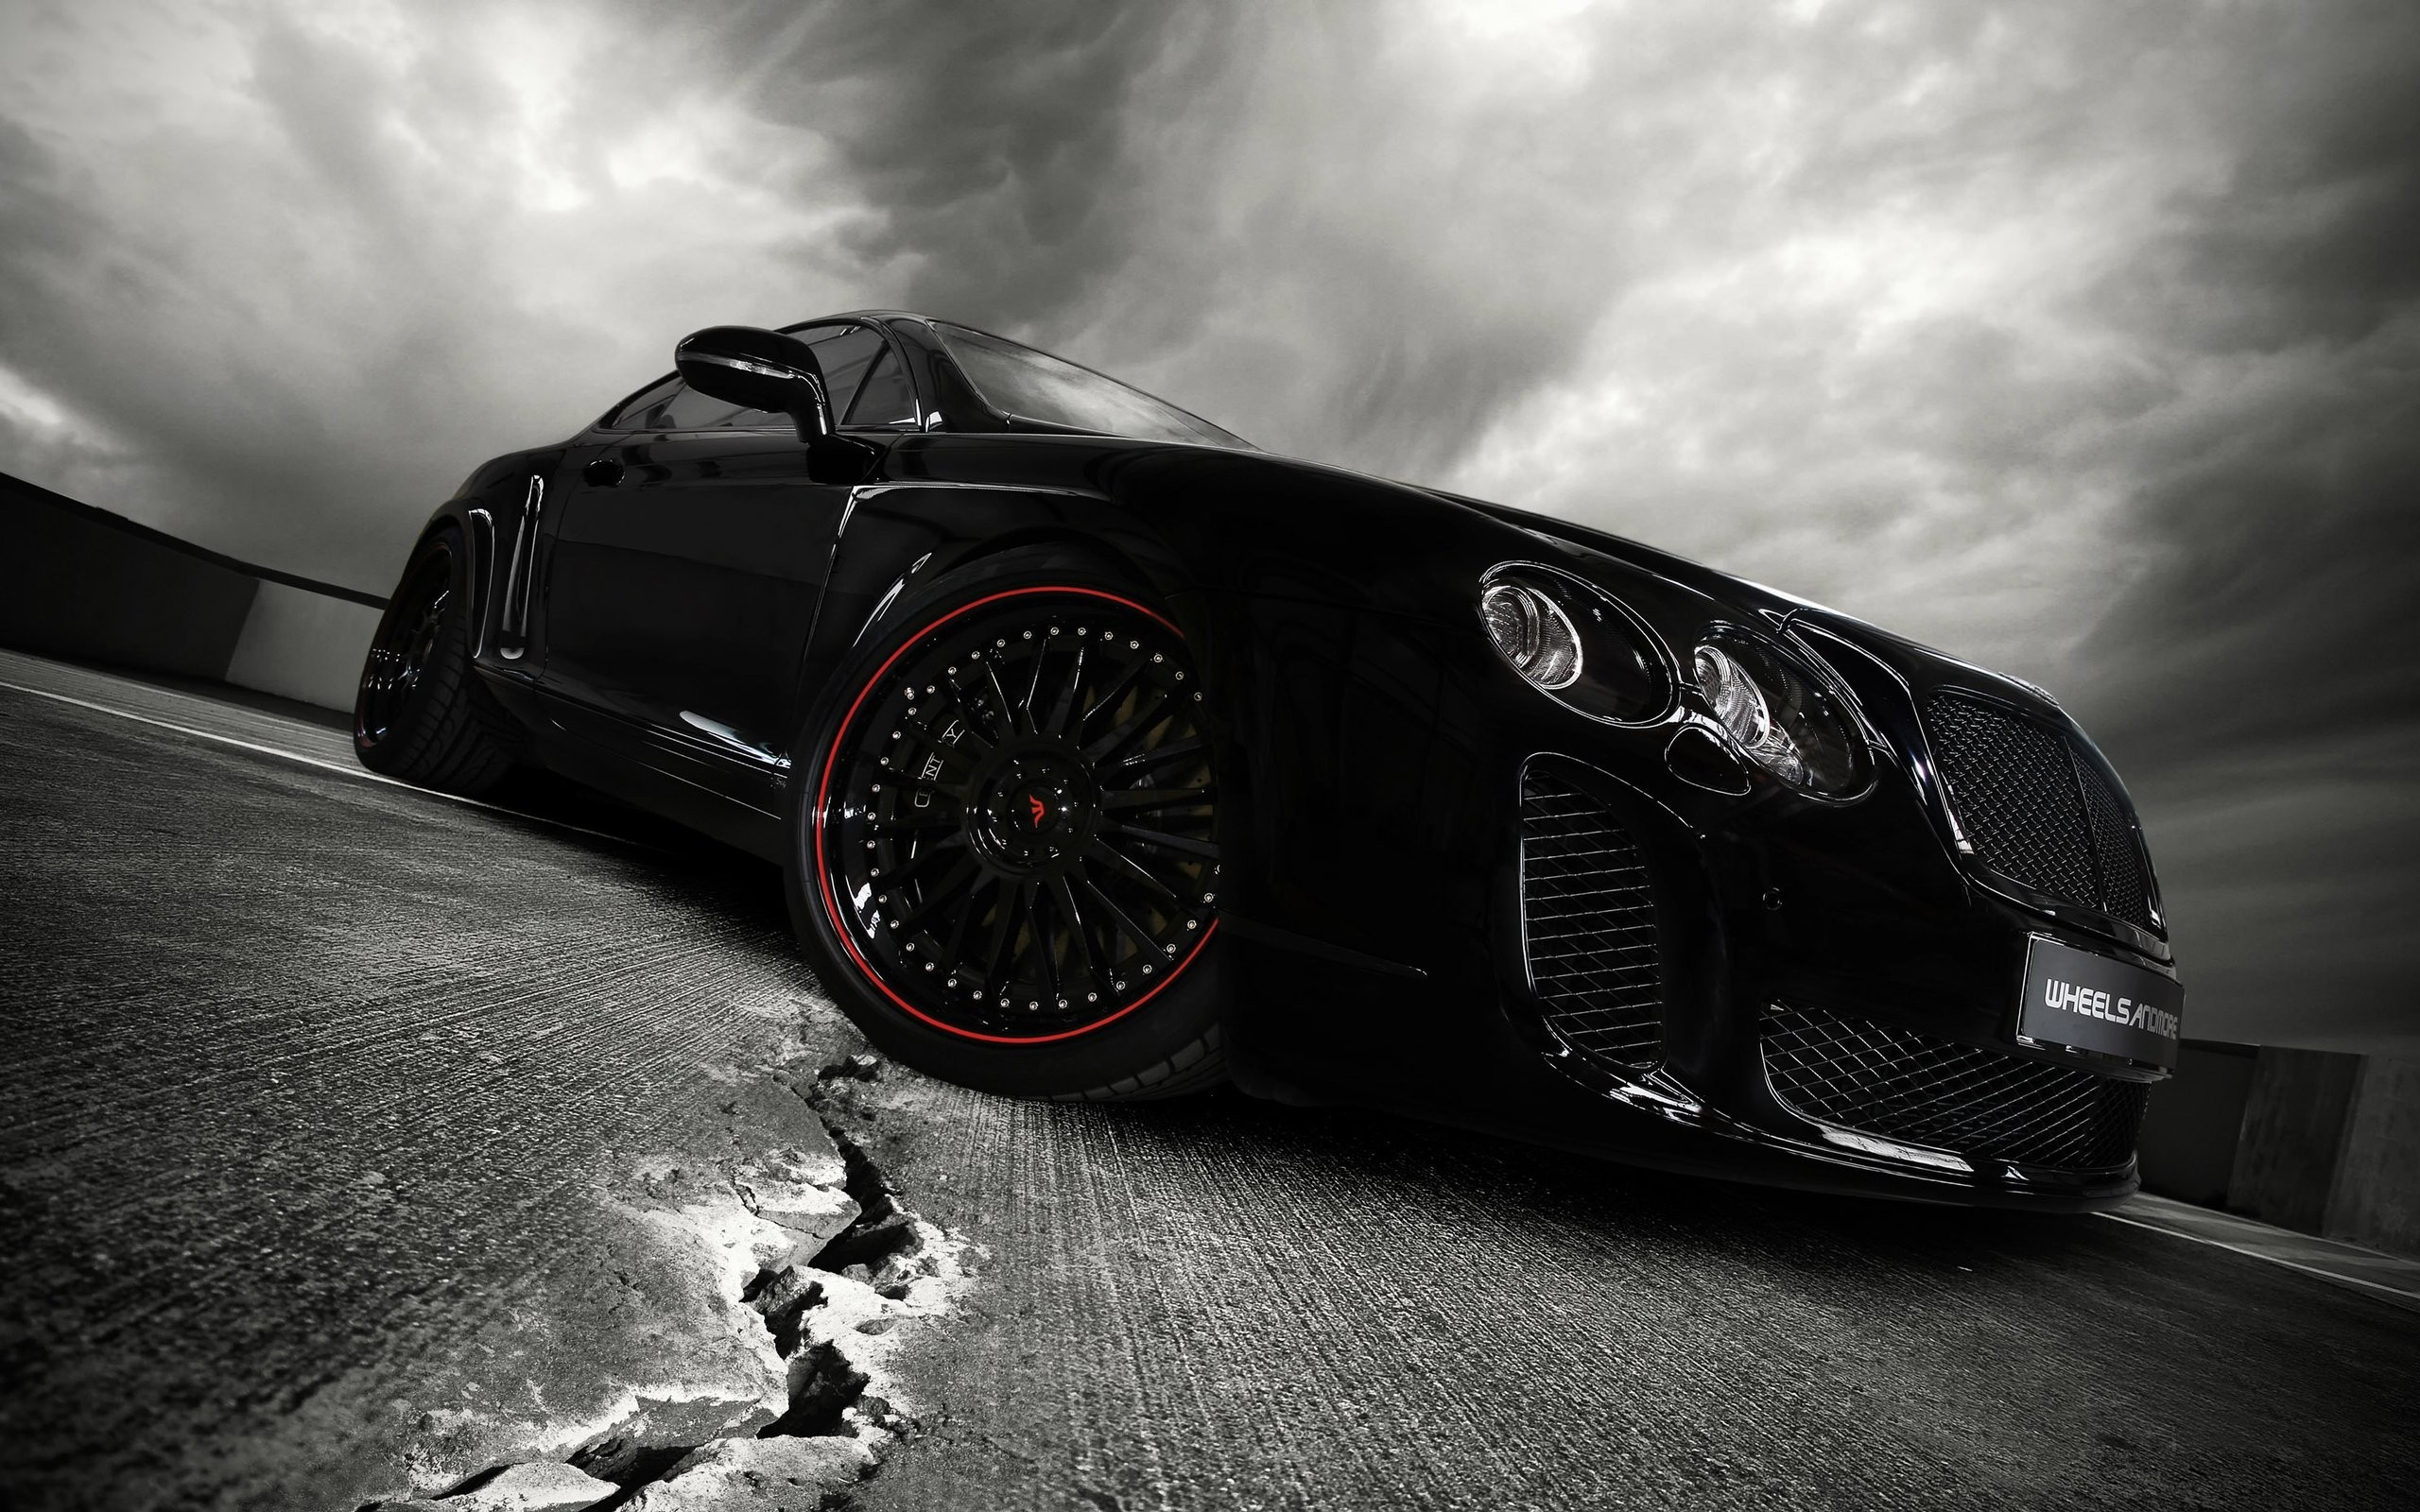 cars Bentley vehicles Supercars HD Wallpaper